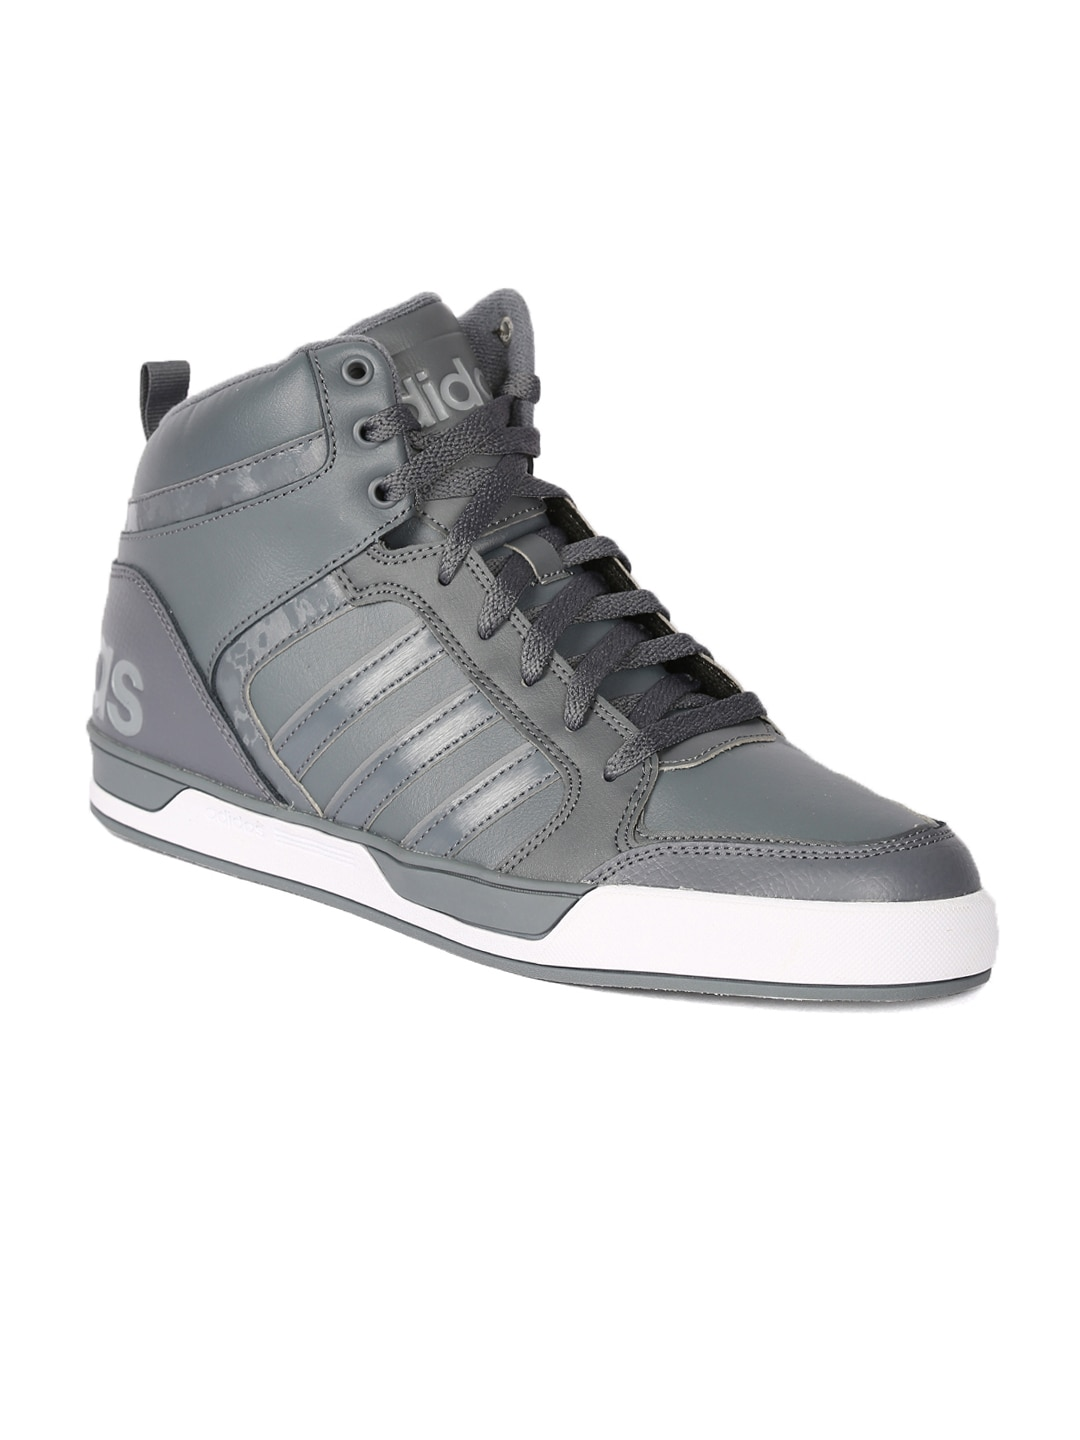 Price Grey Solid Top Adidas Aw4989 Best High In Sneakers Men Neo v0wmnN8